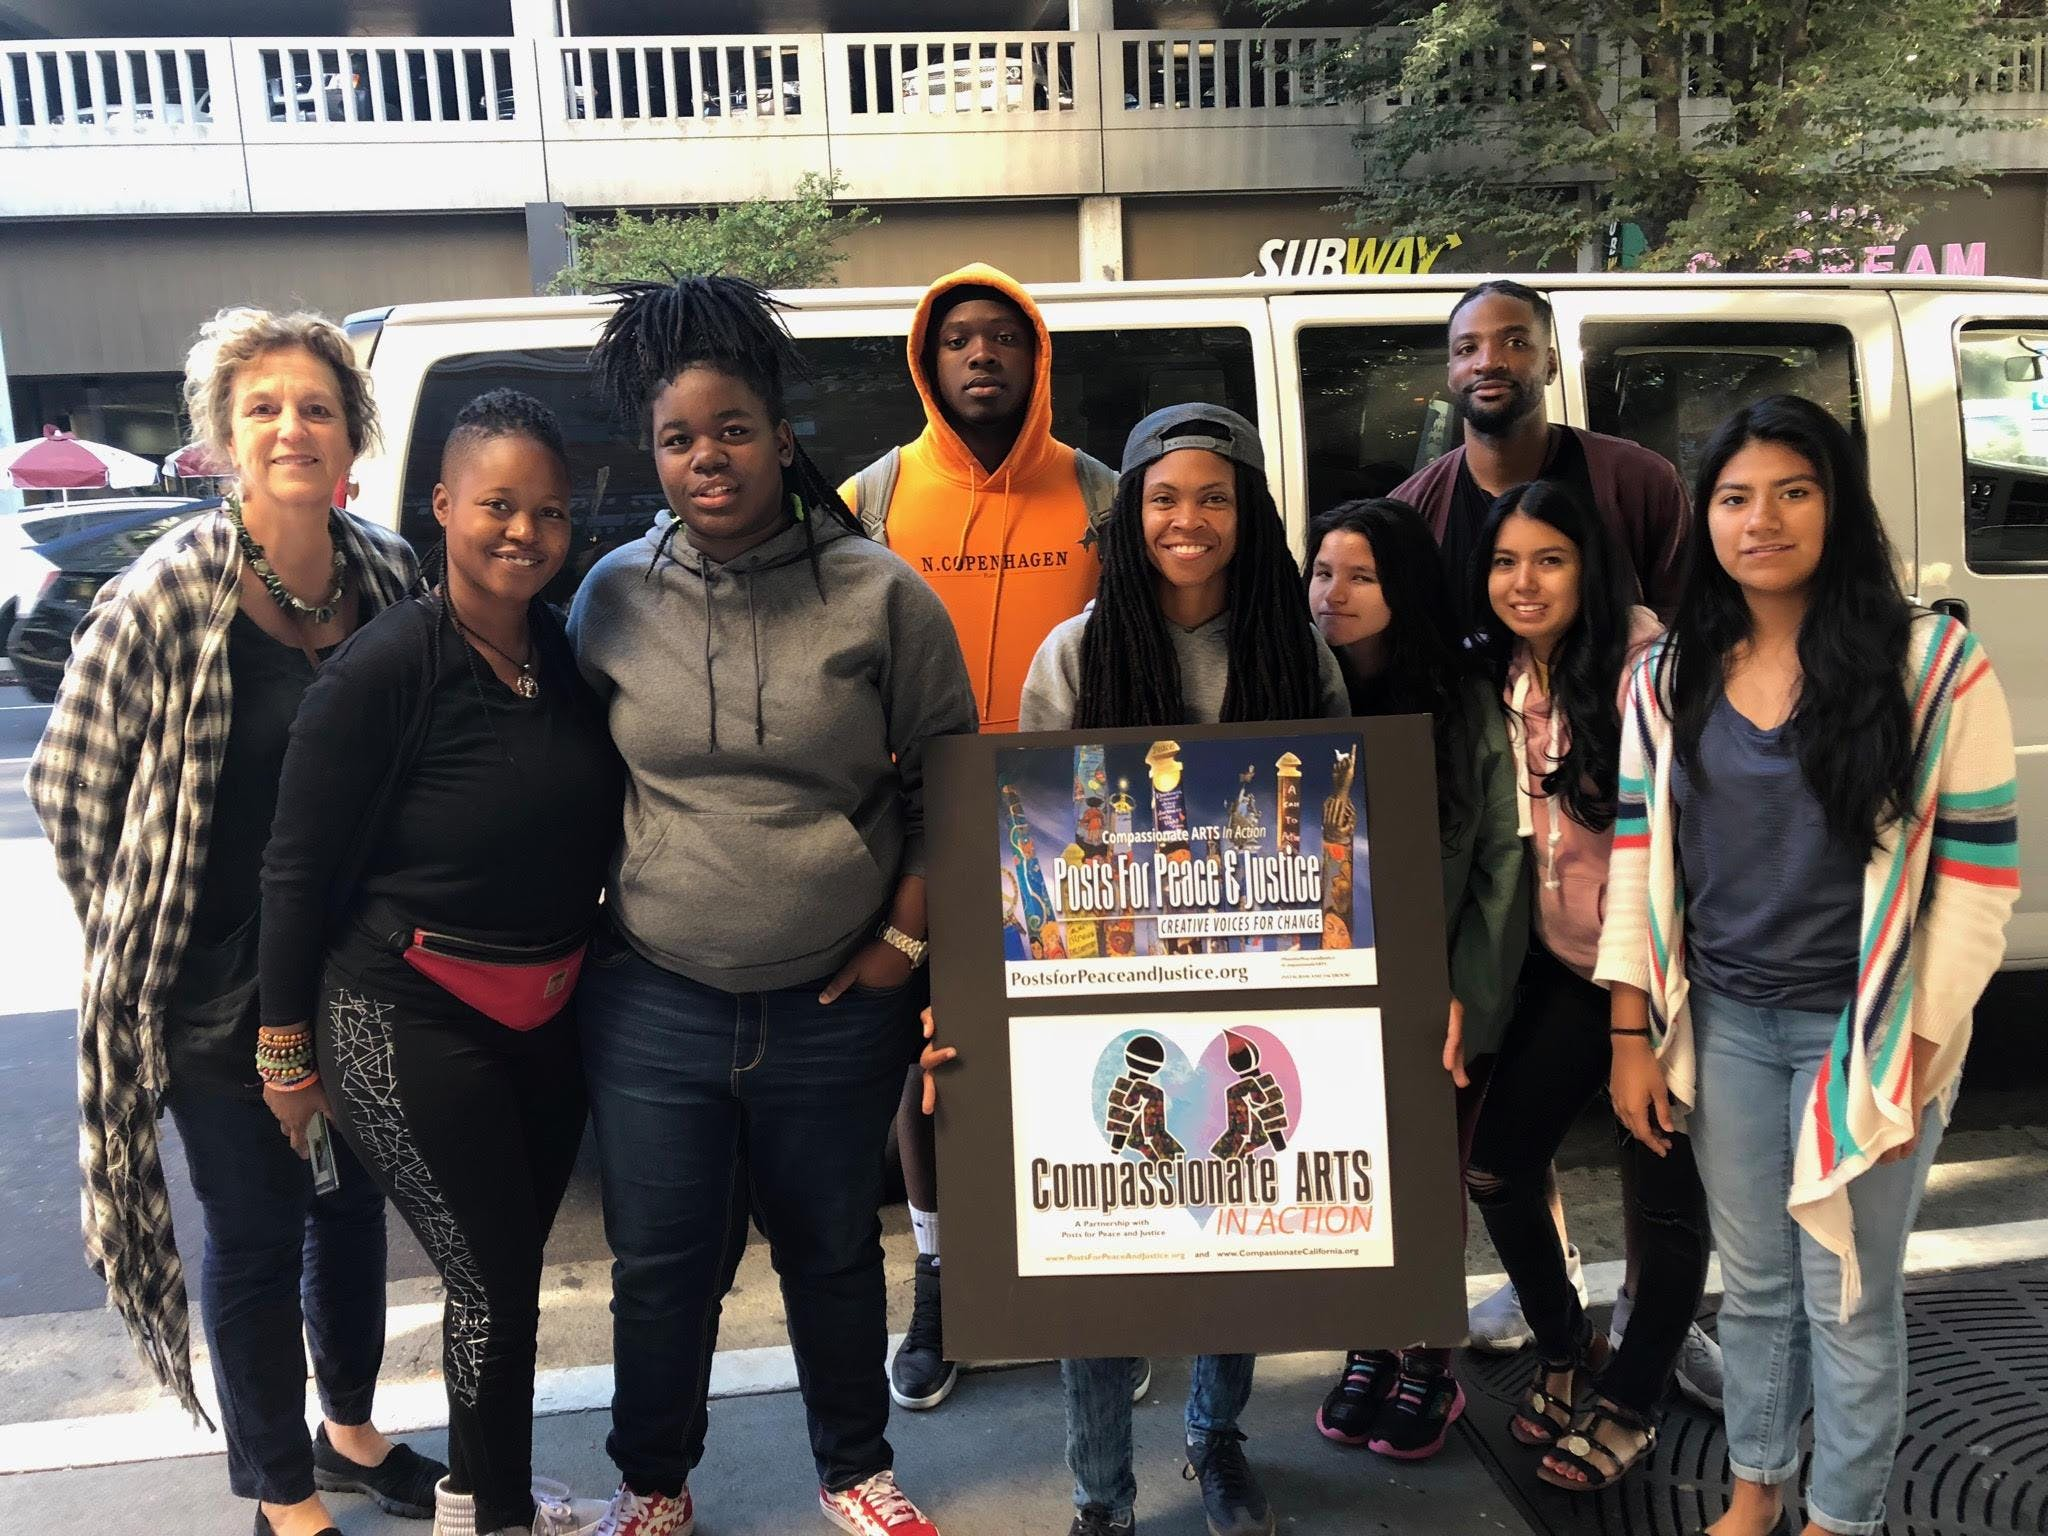 Compassionate Arts Youth Leadership Council